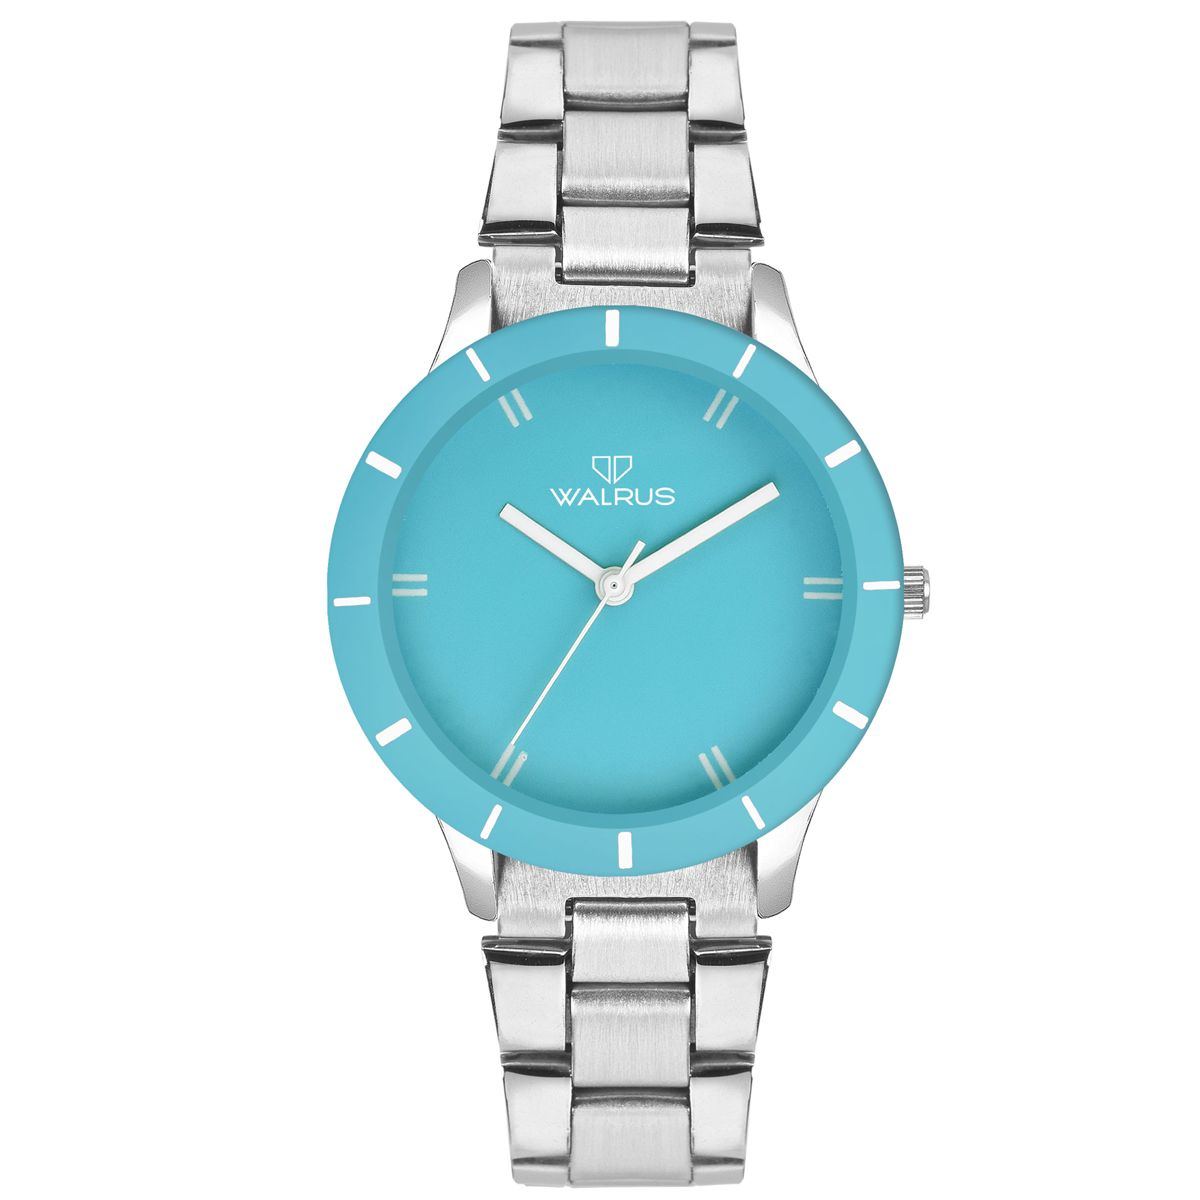 Walrus Eve Chain Cyan Color Analog Women Watch -WWW-Eve -CH-130707